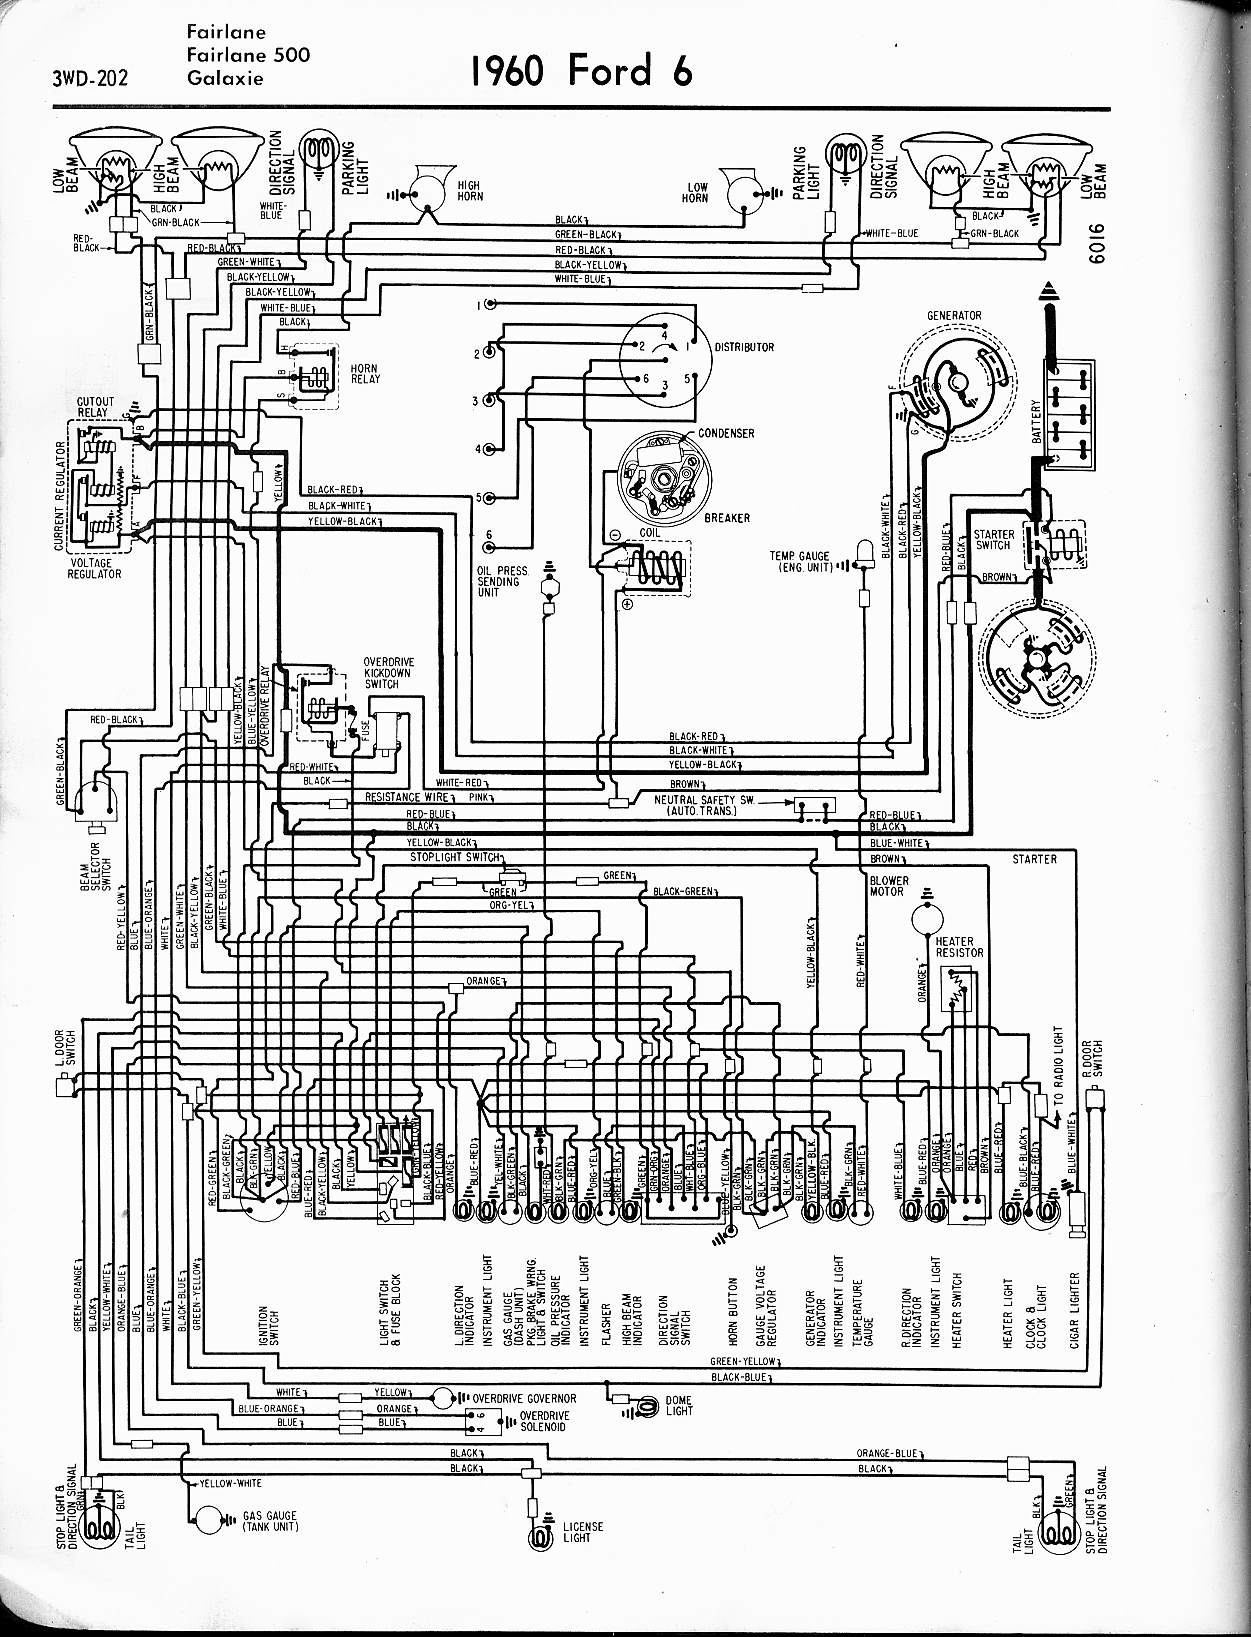 57 65 Ford Wiring Diagrams Automotive 4 1960 6 Cyl Fairlane 500 Galaxie